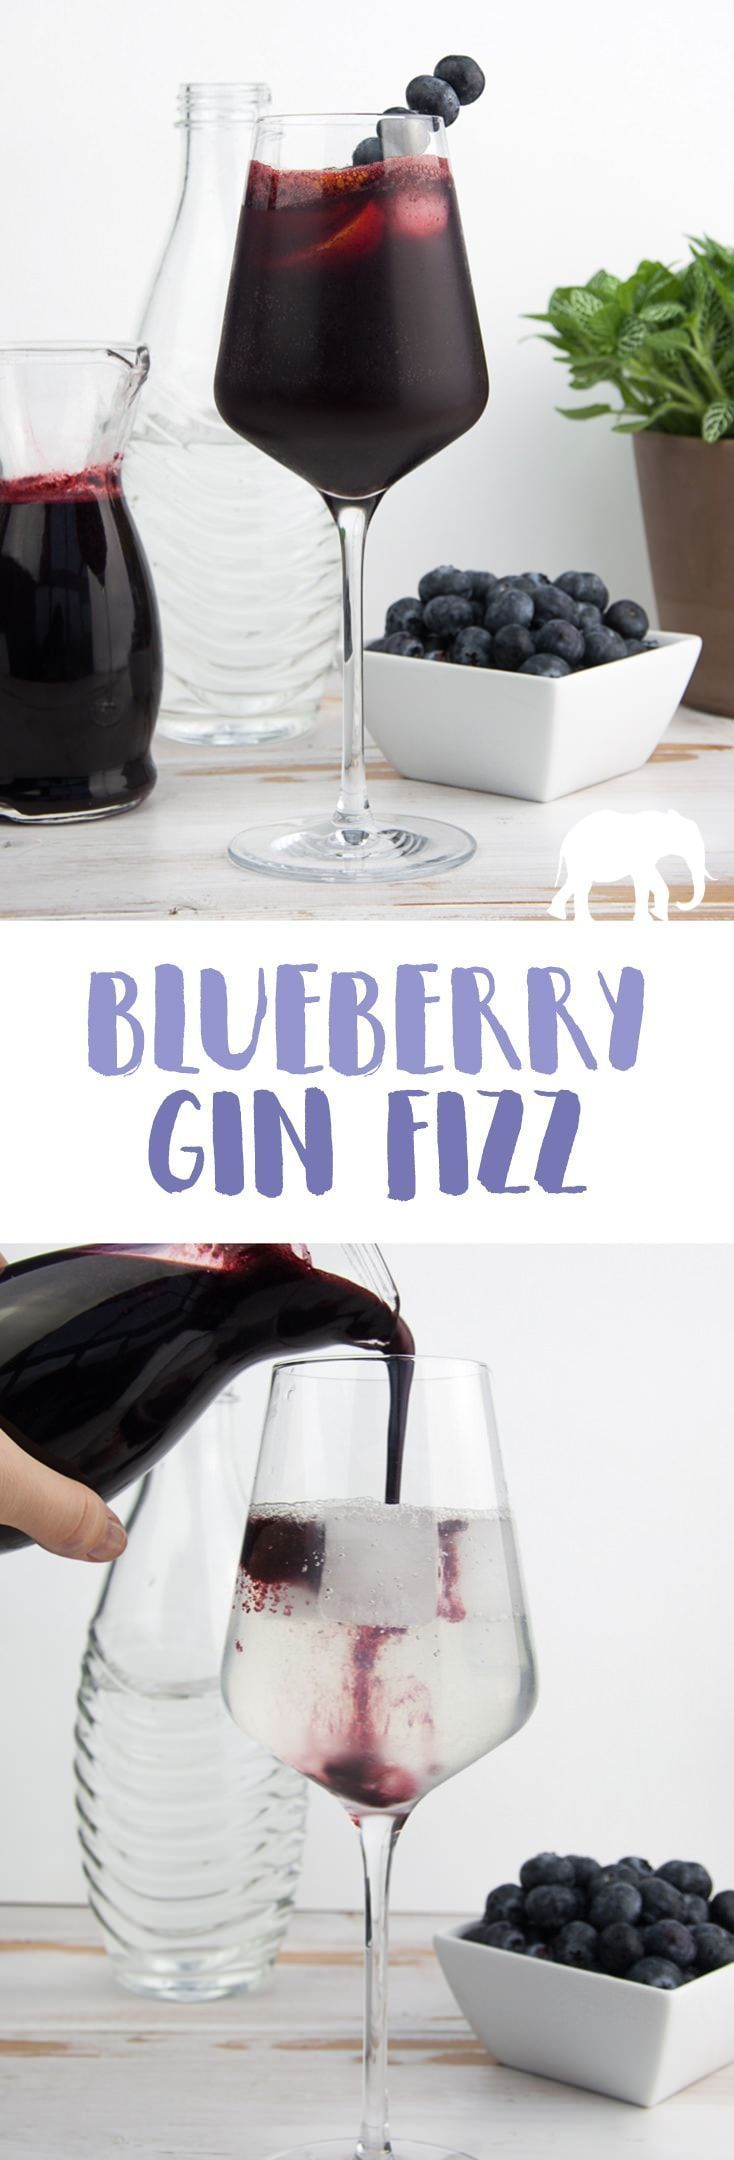 Blueberry gin fizz with homemade blueberry syrup